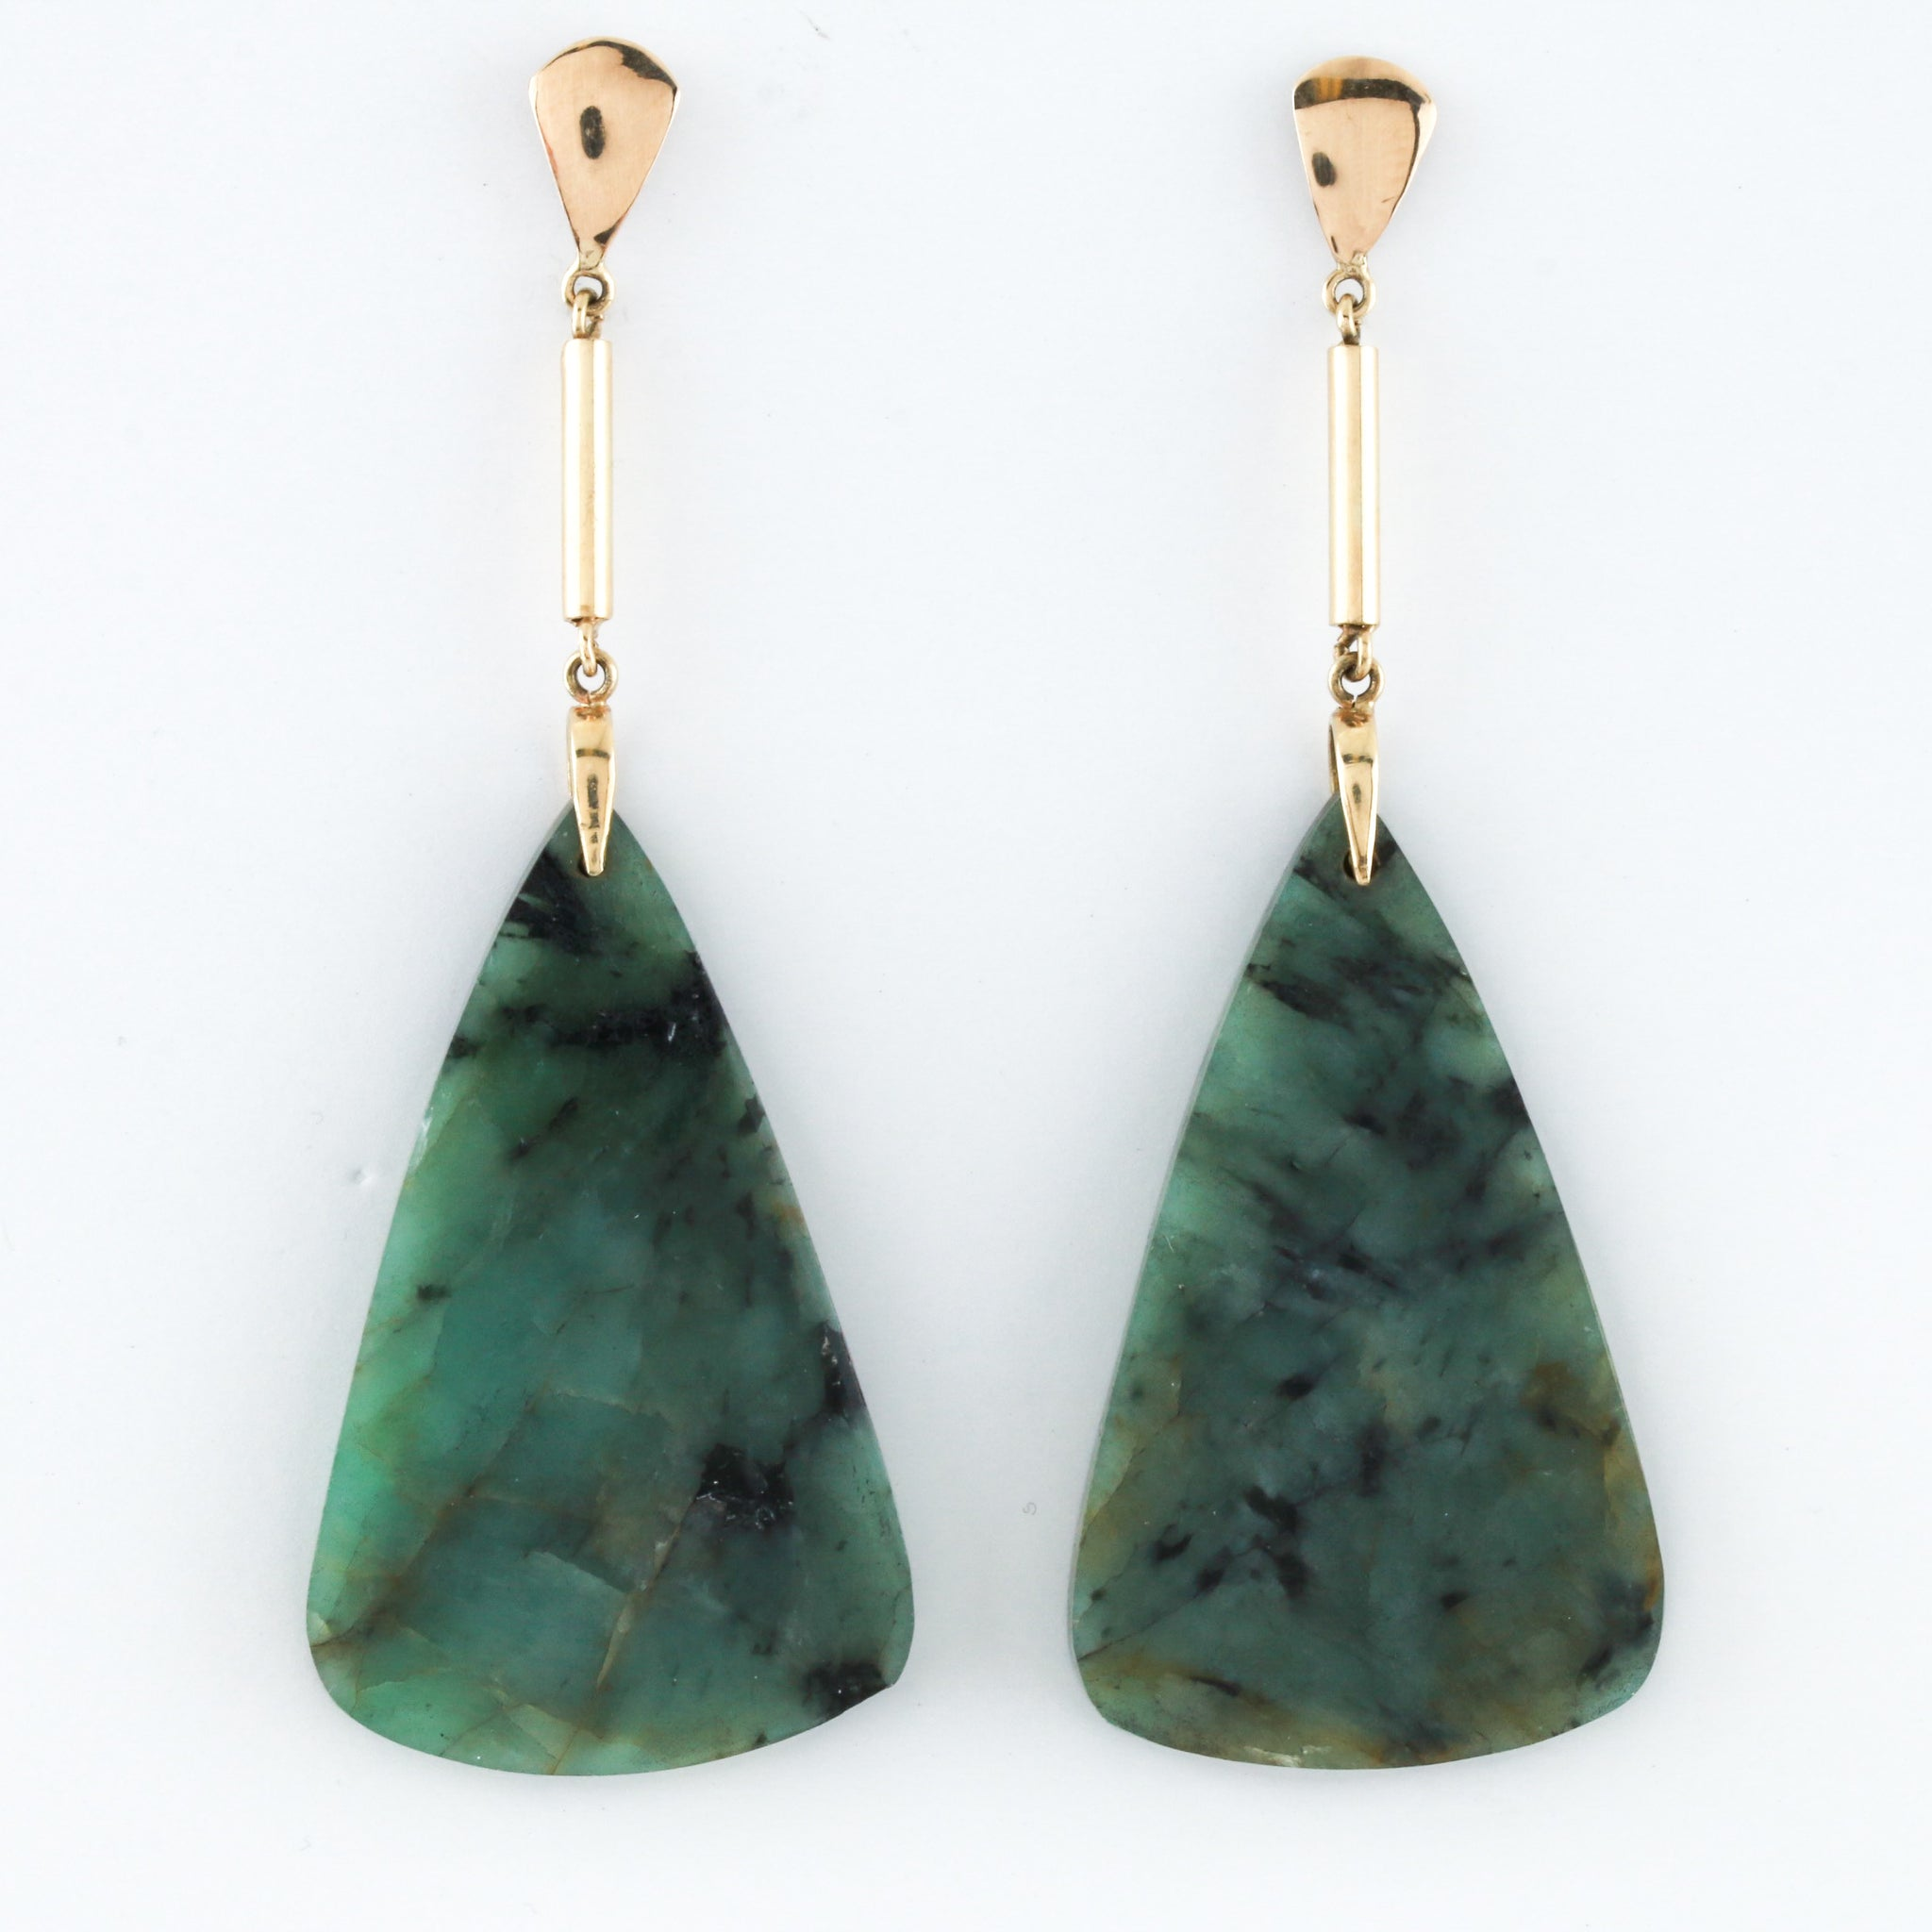 Emerald Slice Earrings with Yellow Gold Mountings